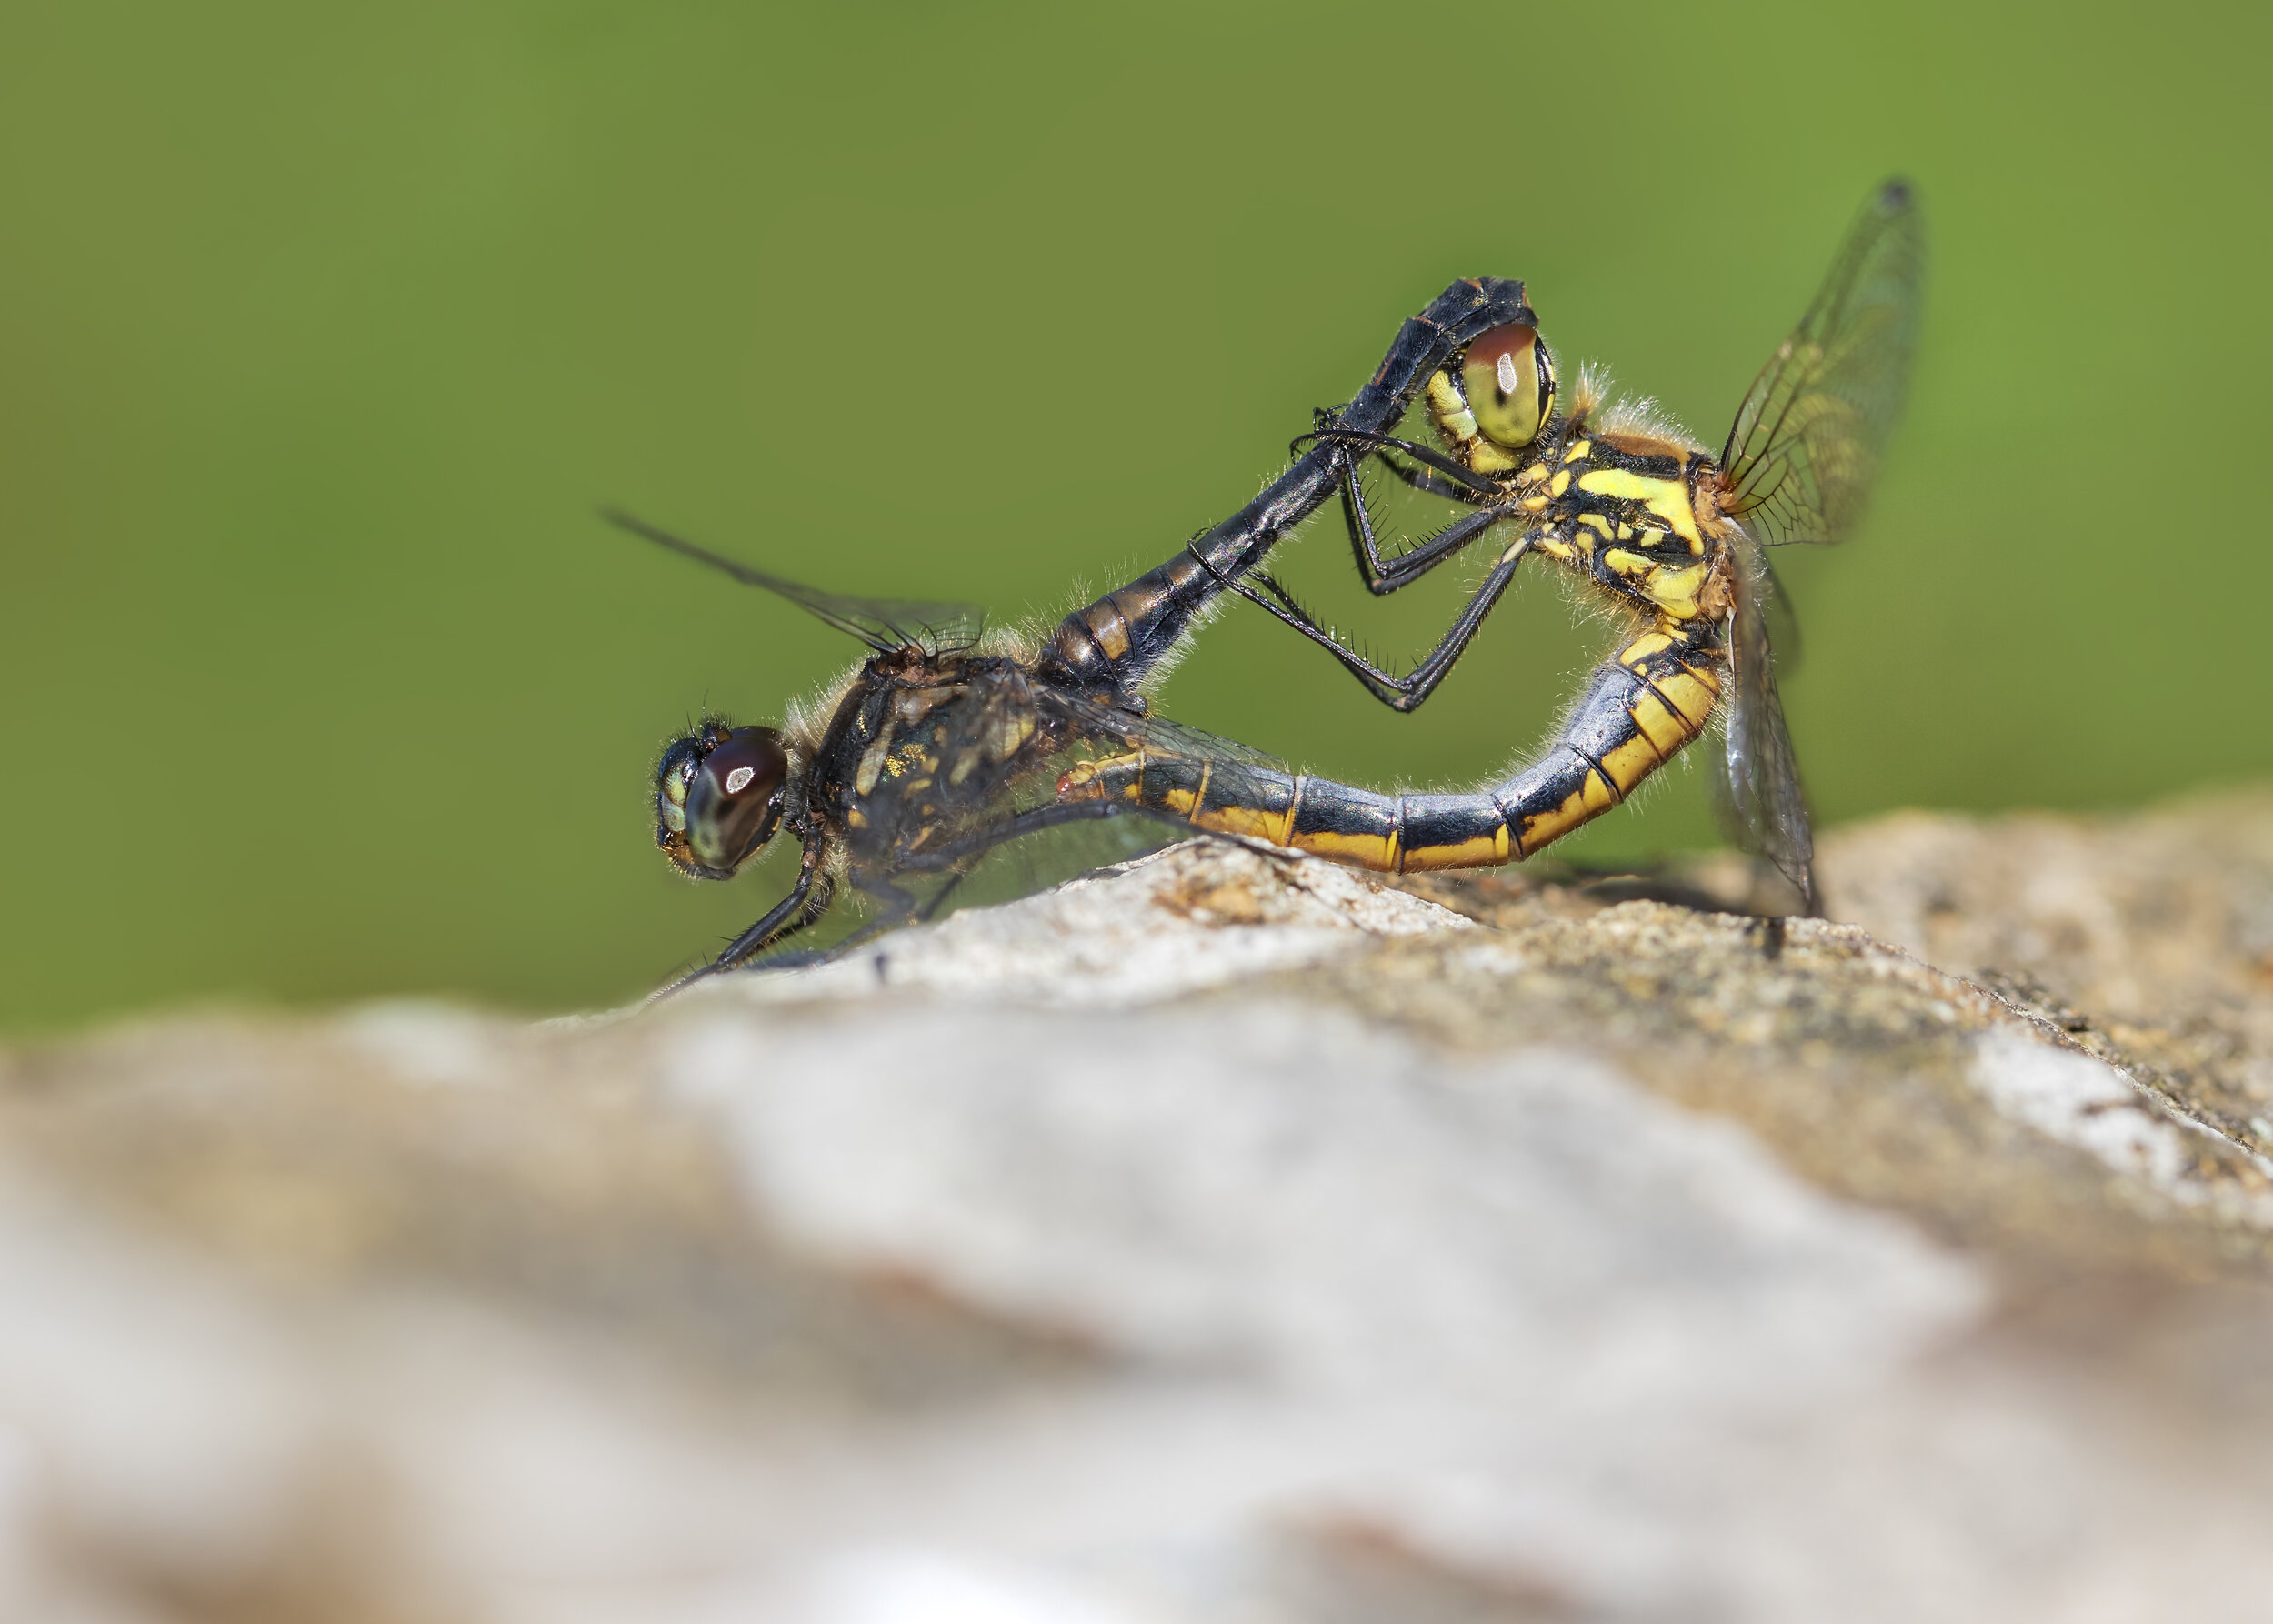 Black Darter Pair - Left Male | Right Female